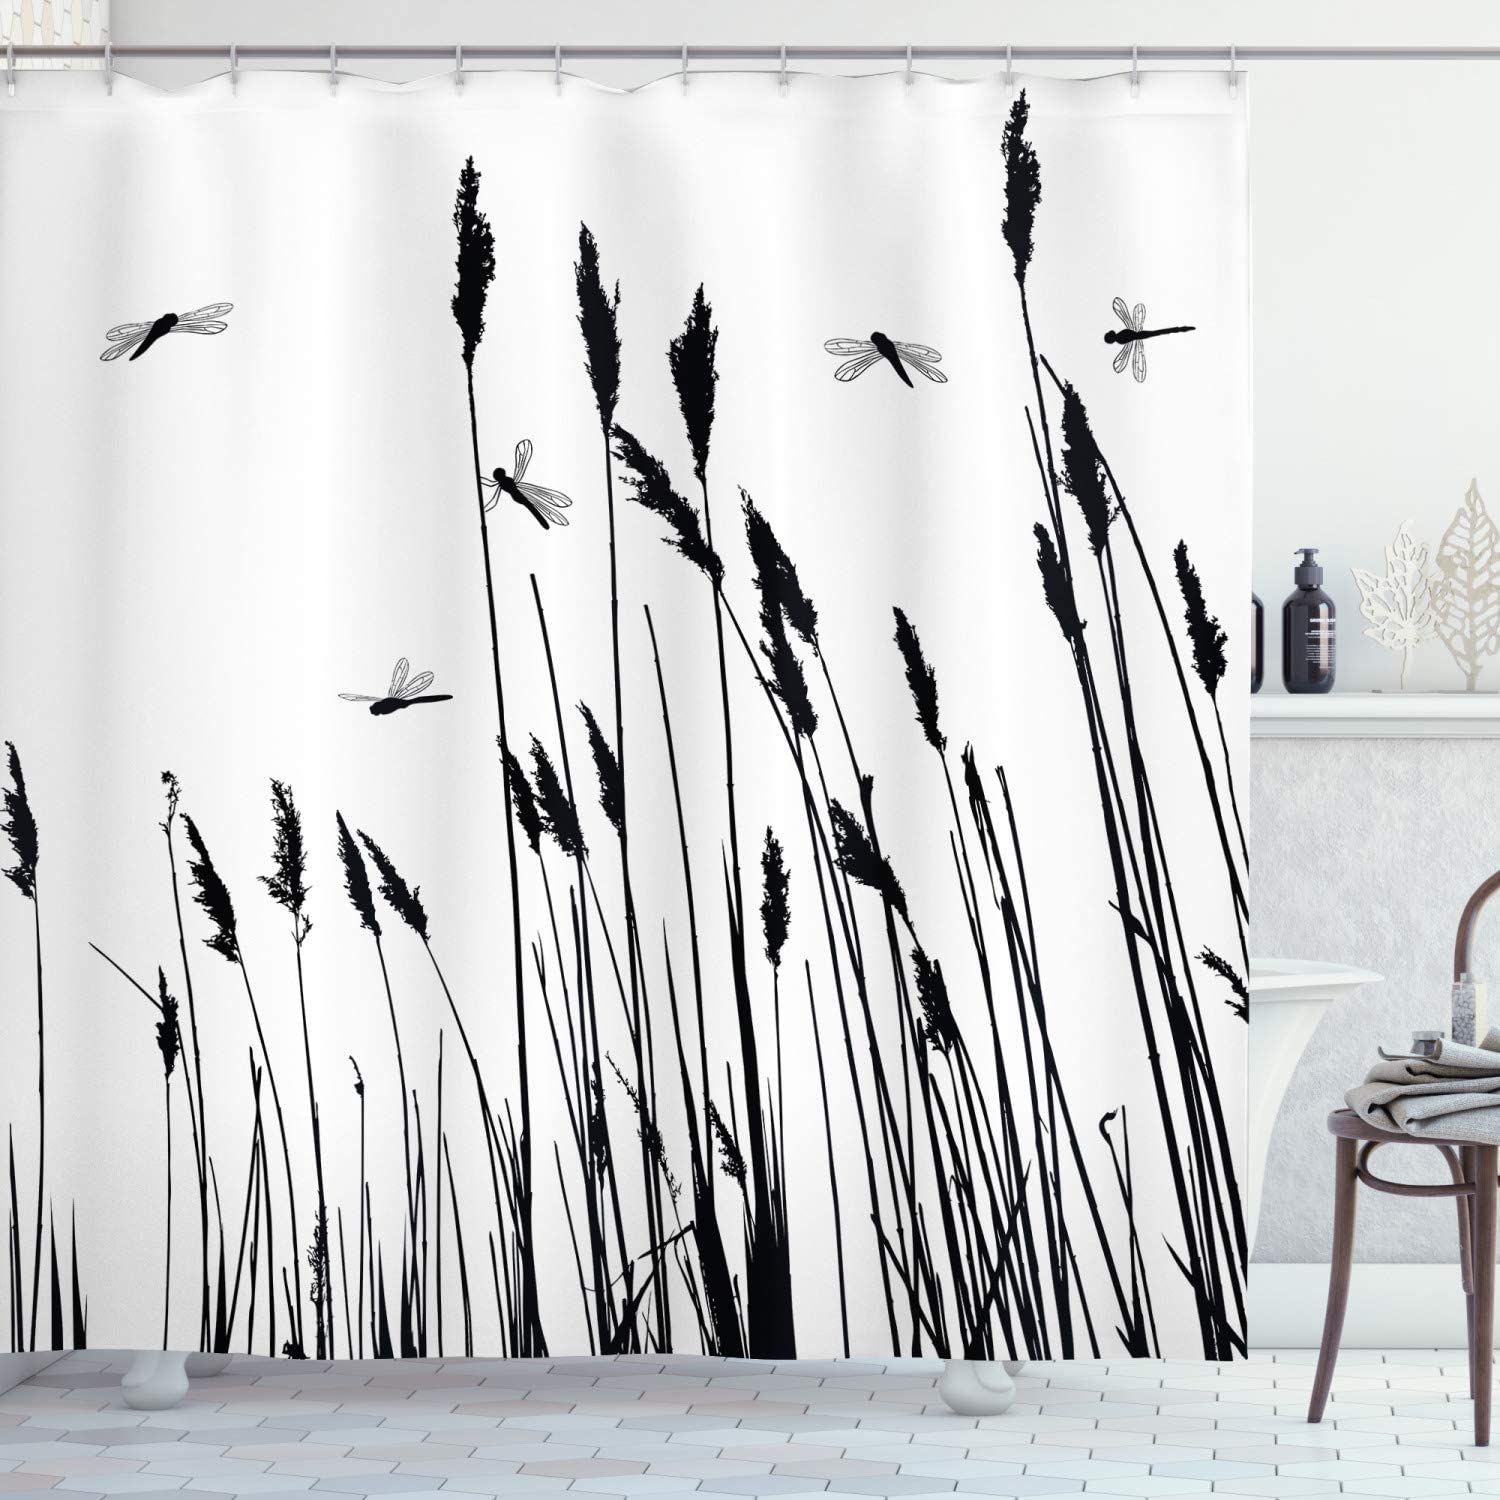 Ambesonne Dragonfly Shower Curtain, Wheat Field Autumn Agriculture Background Nature Harvest Bush Herbs Theme Art, Cloth Fabric Bathroom Decor Set with Hooks, 70